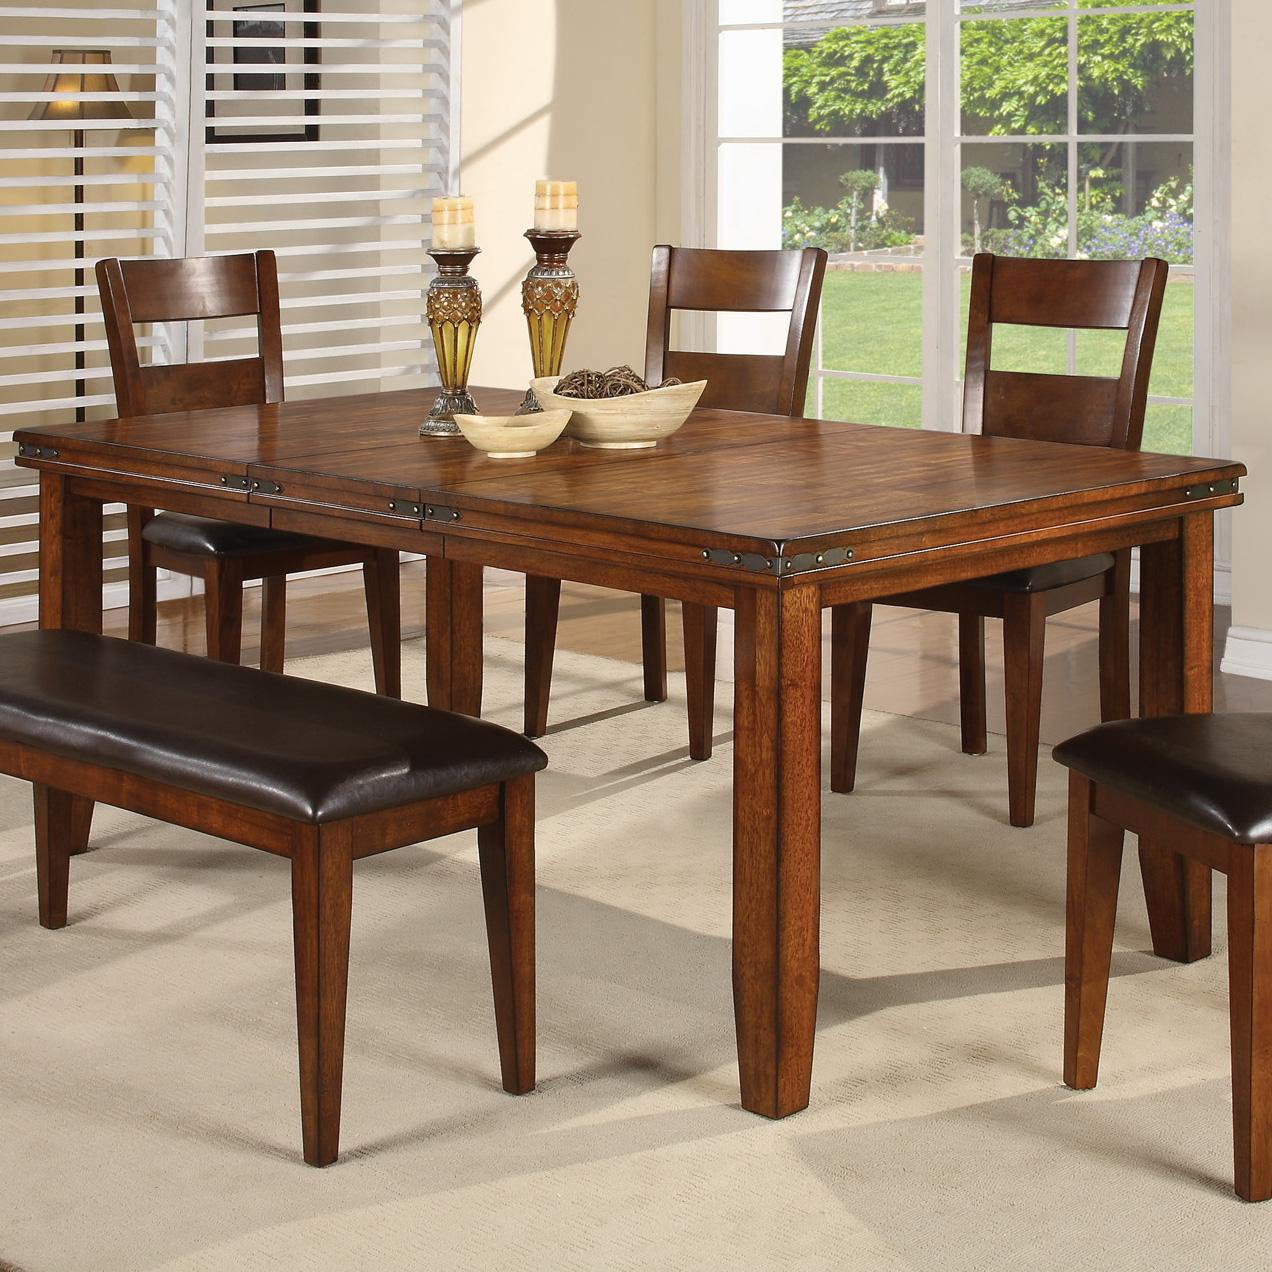 Rectangular Leg Dining Table Figaro By Crown Mark Wilcox Furniture Dining Room Table